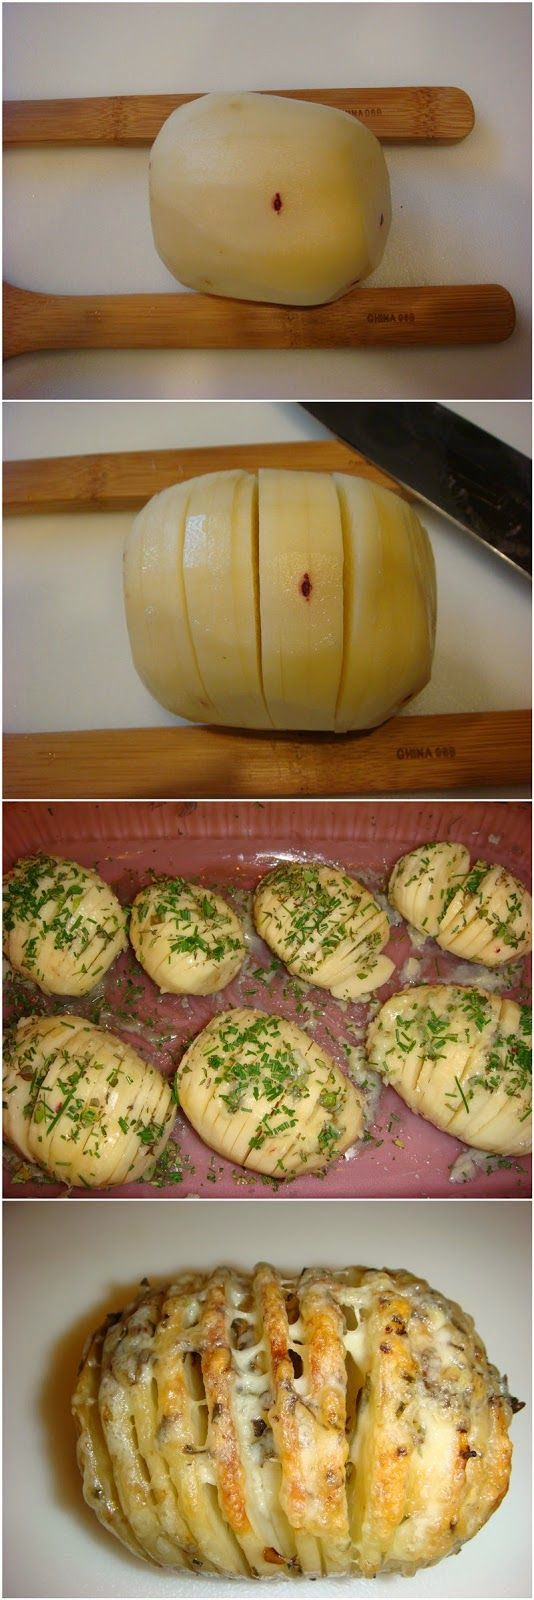 Sliced Baked Potatoes with Herbs and Cheese - cookclouds